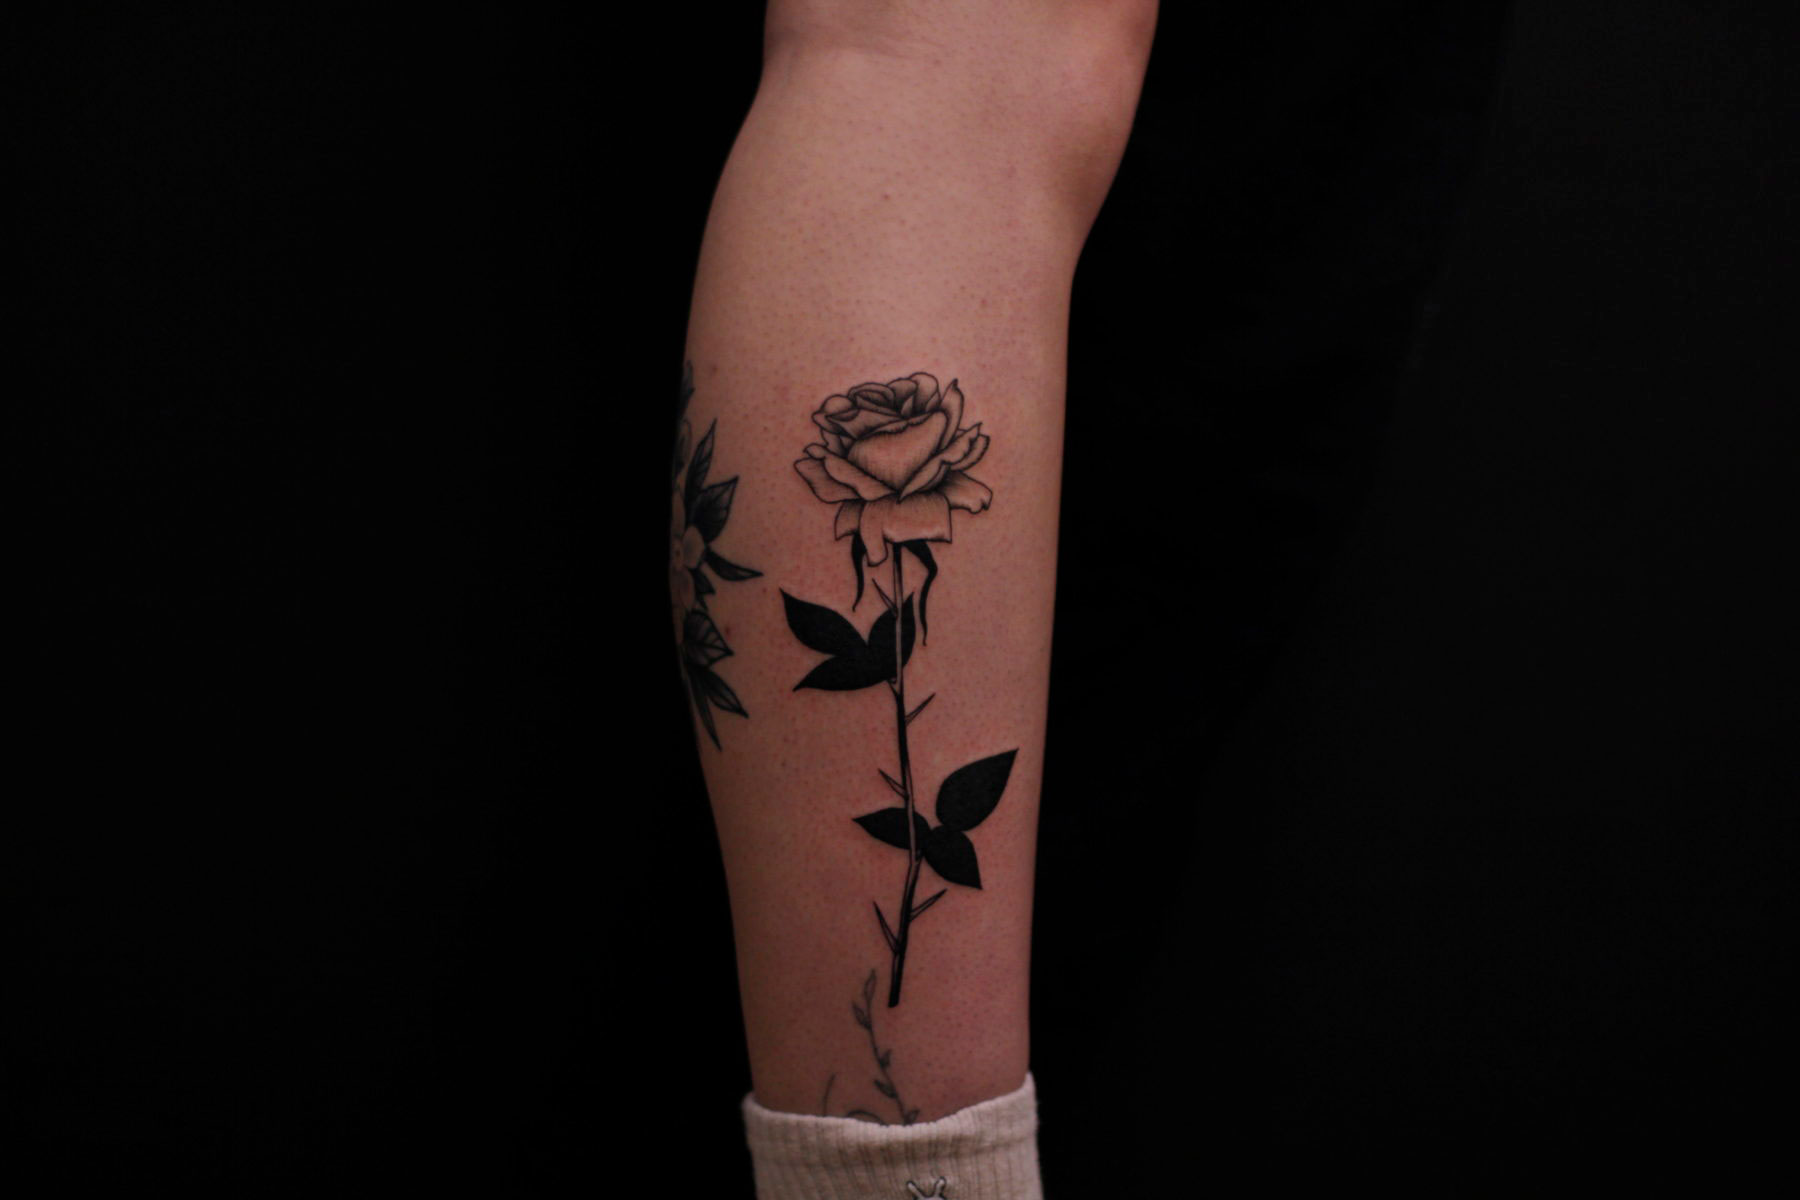 fine line minimalist floral rose tattoo with solid black leaves on forearm